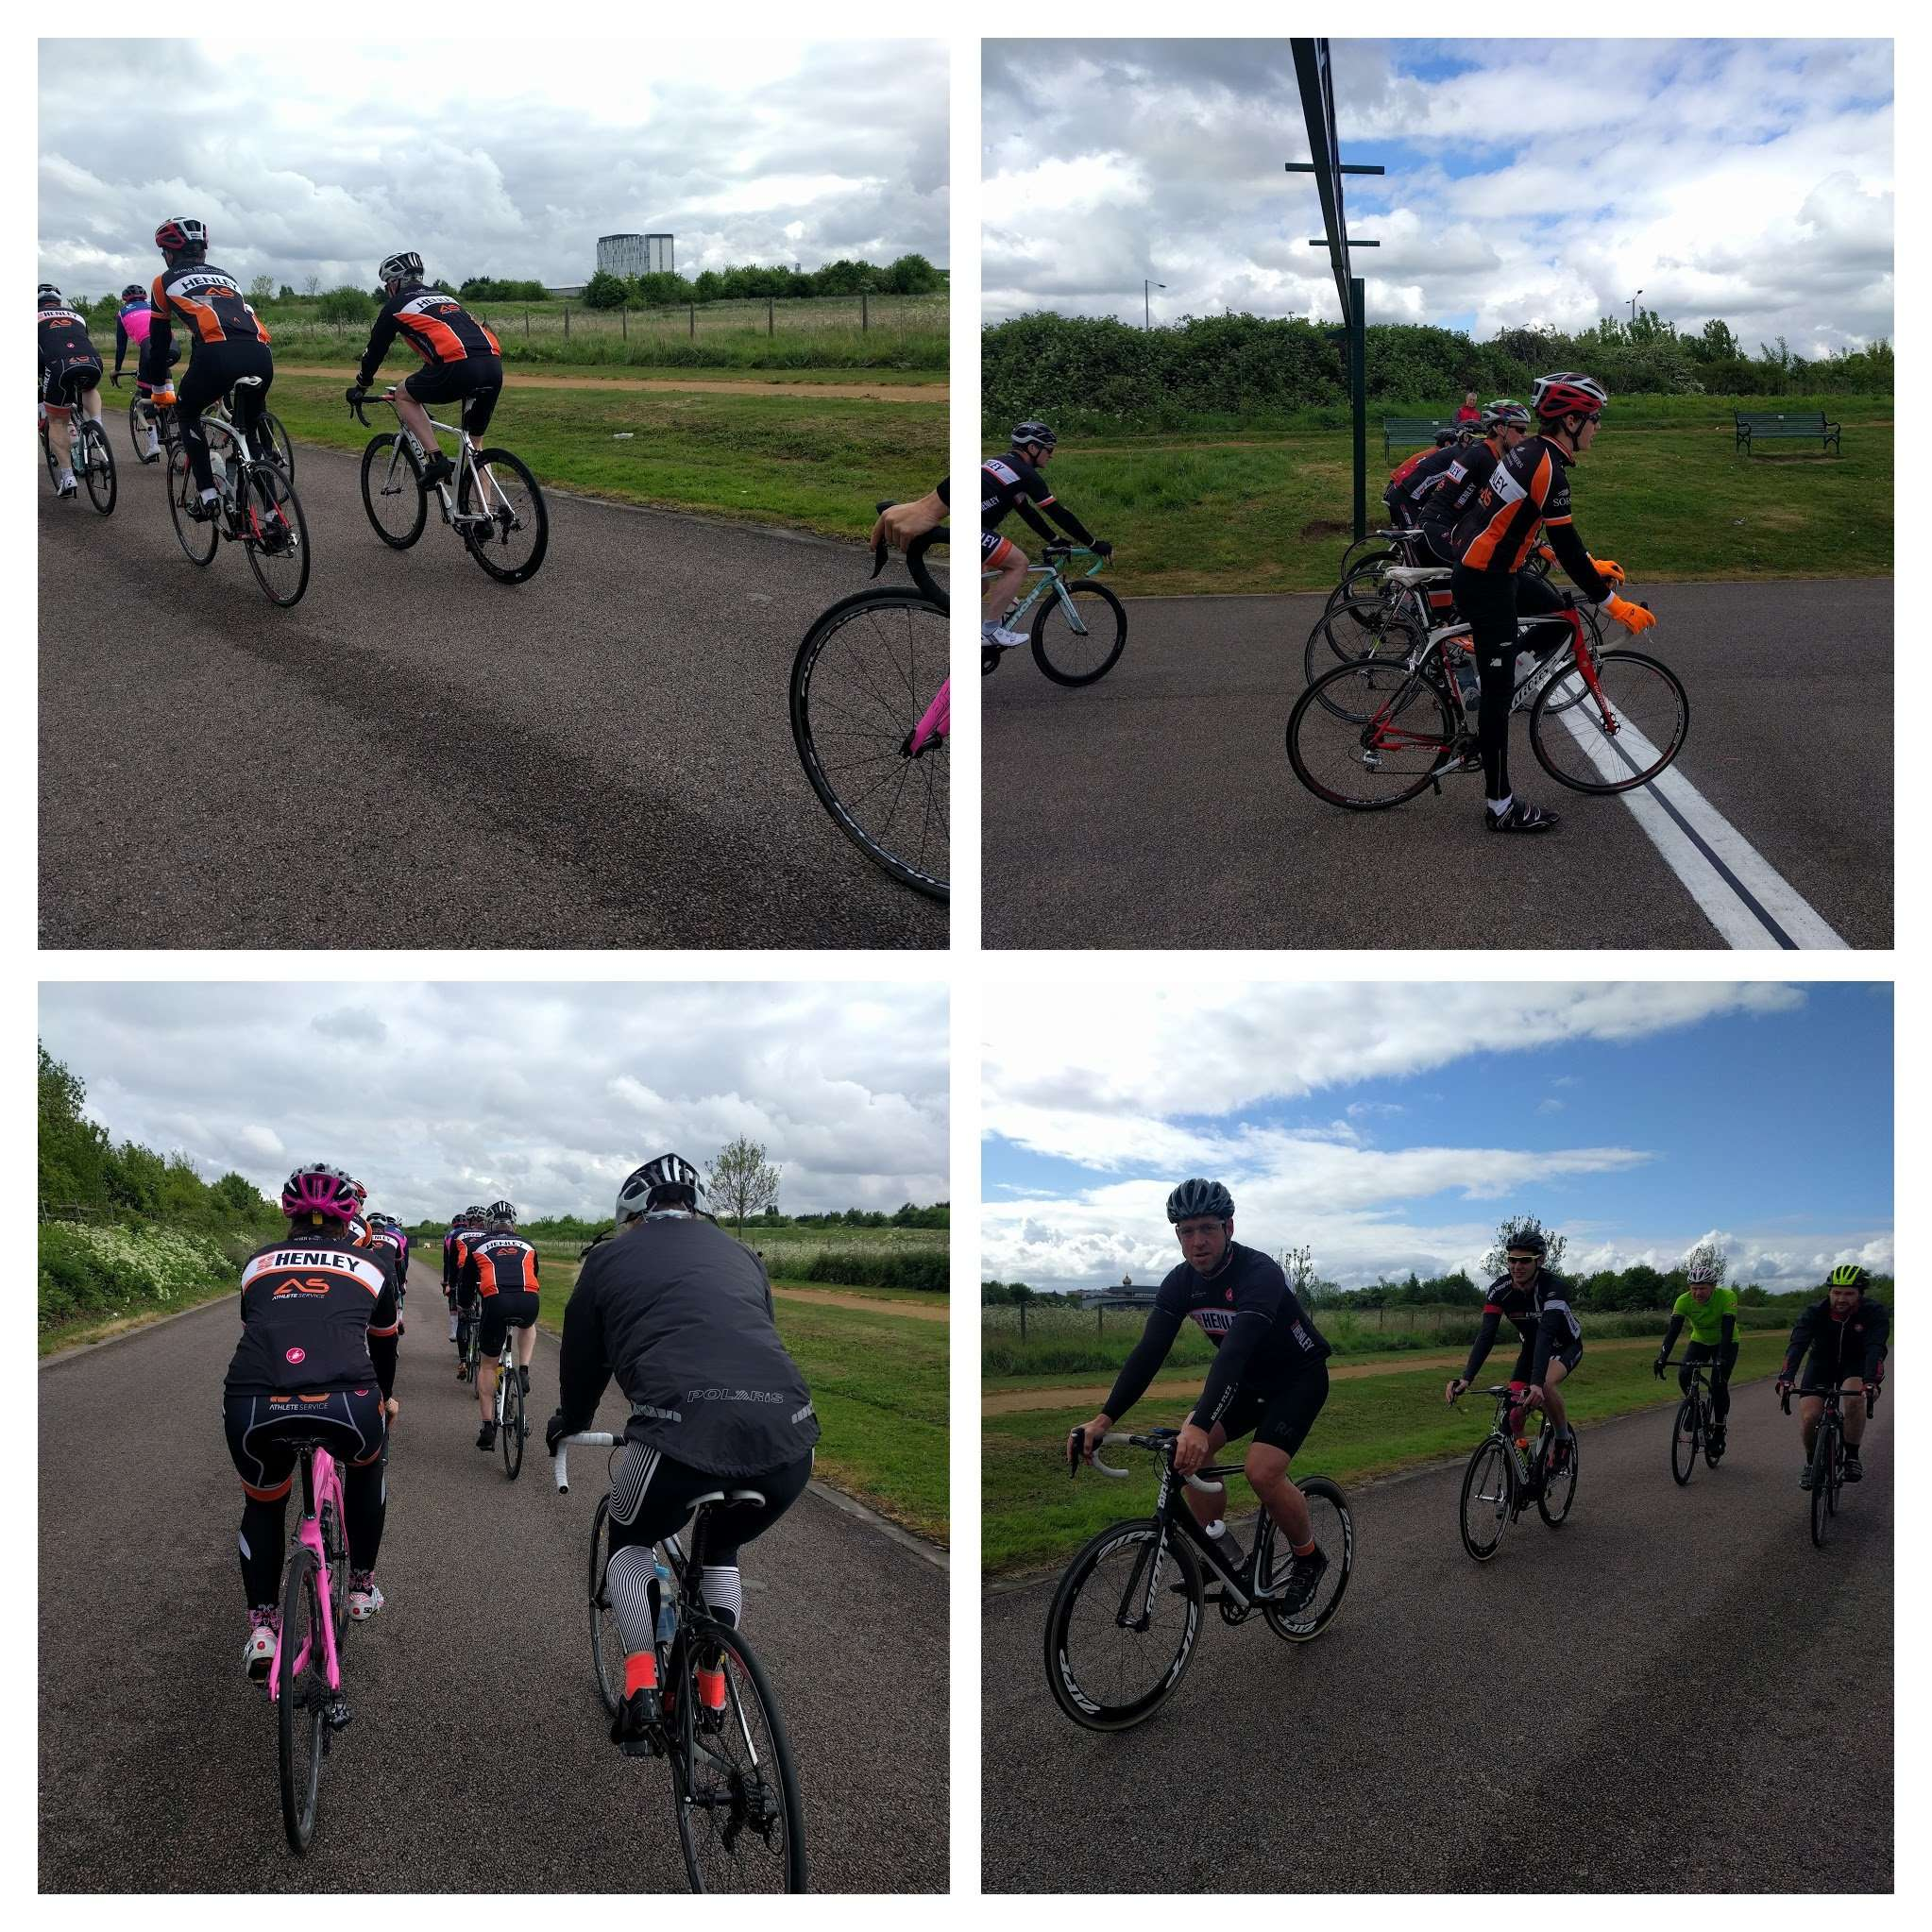 Coached Training Day at Hillingdon